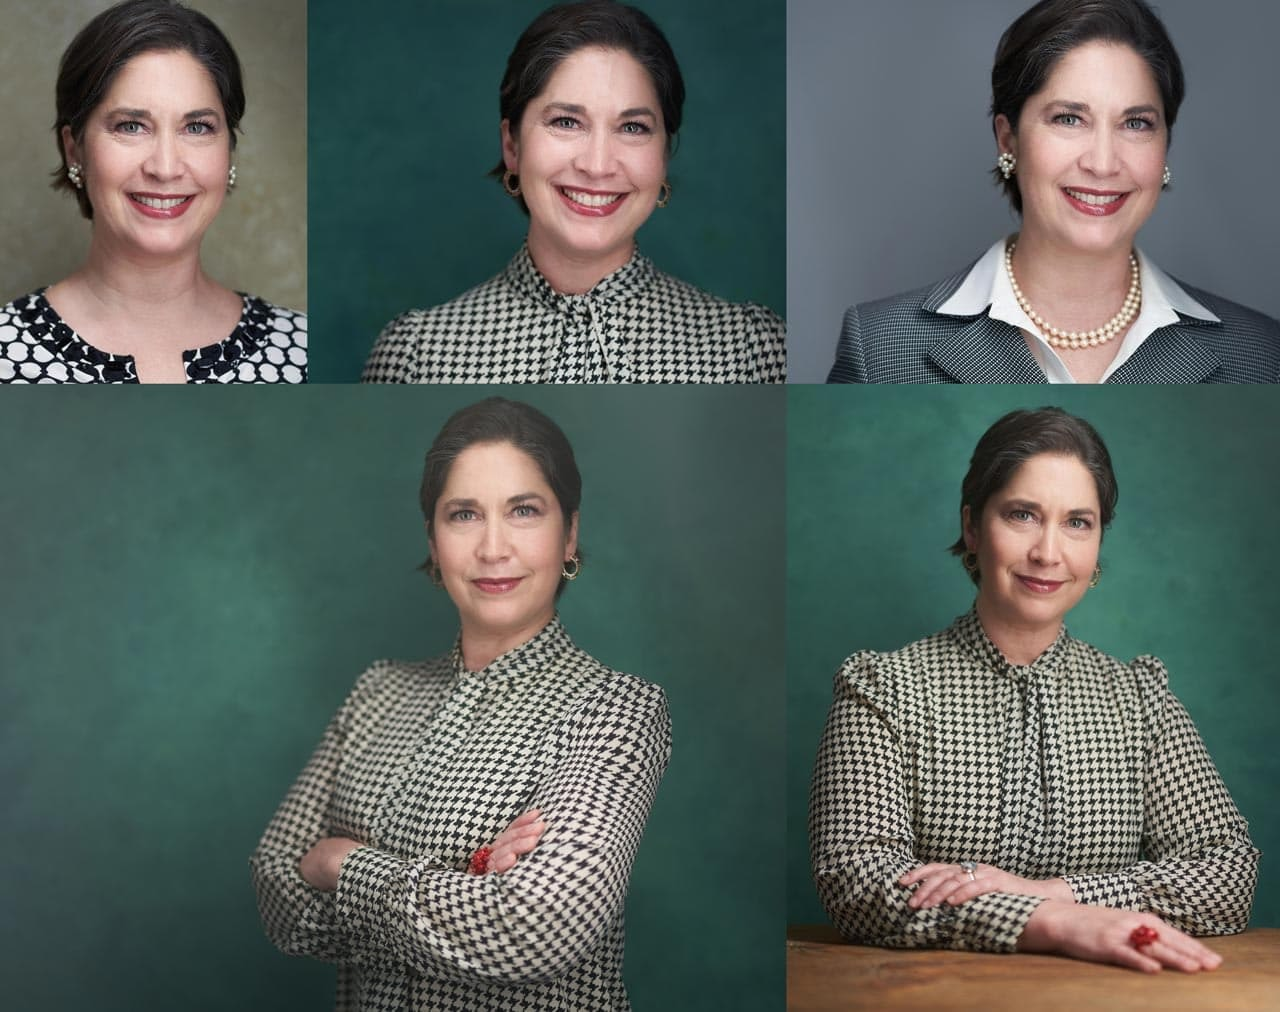 Business Portraits Collage